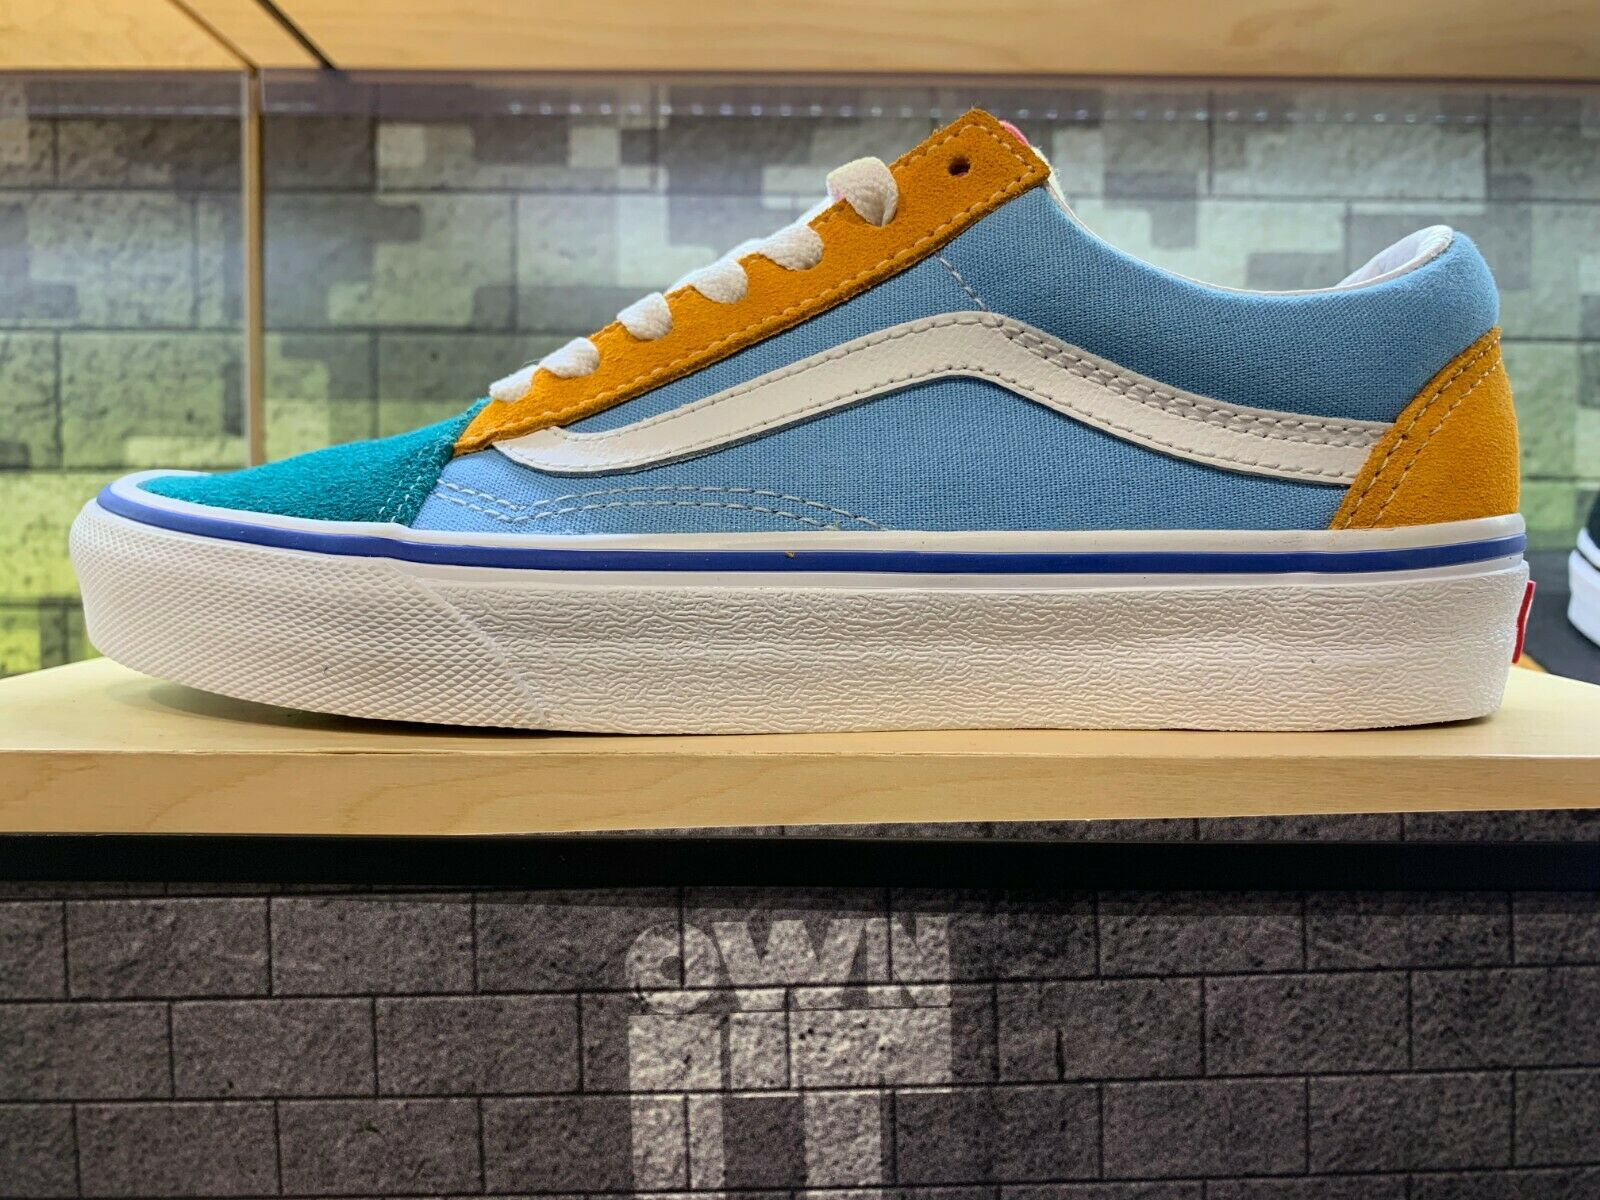 Vans Old Skool colorblock Multi Bright Yacht Club bluee Green Yellow Pink SZ 4-13